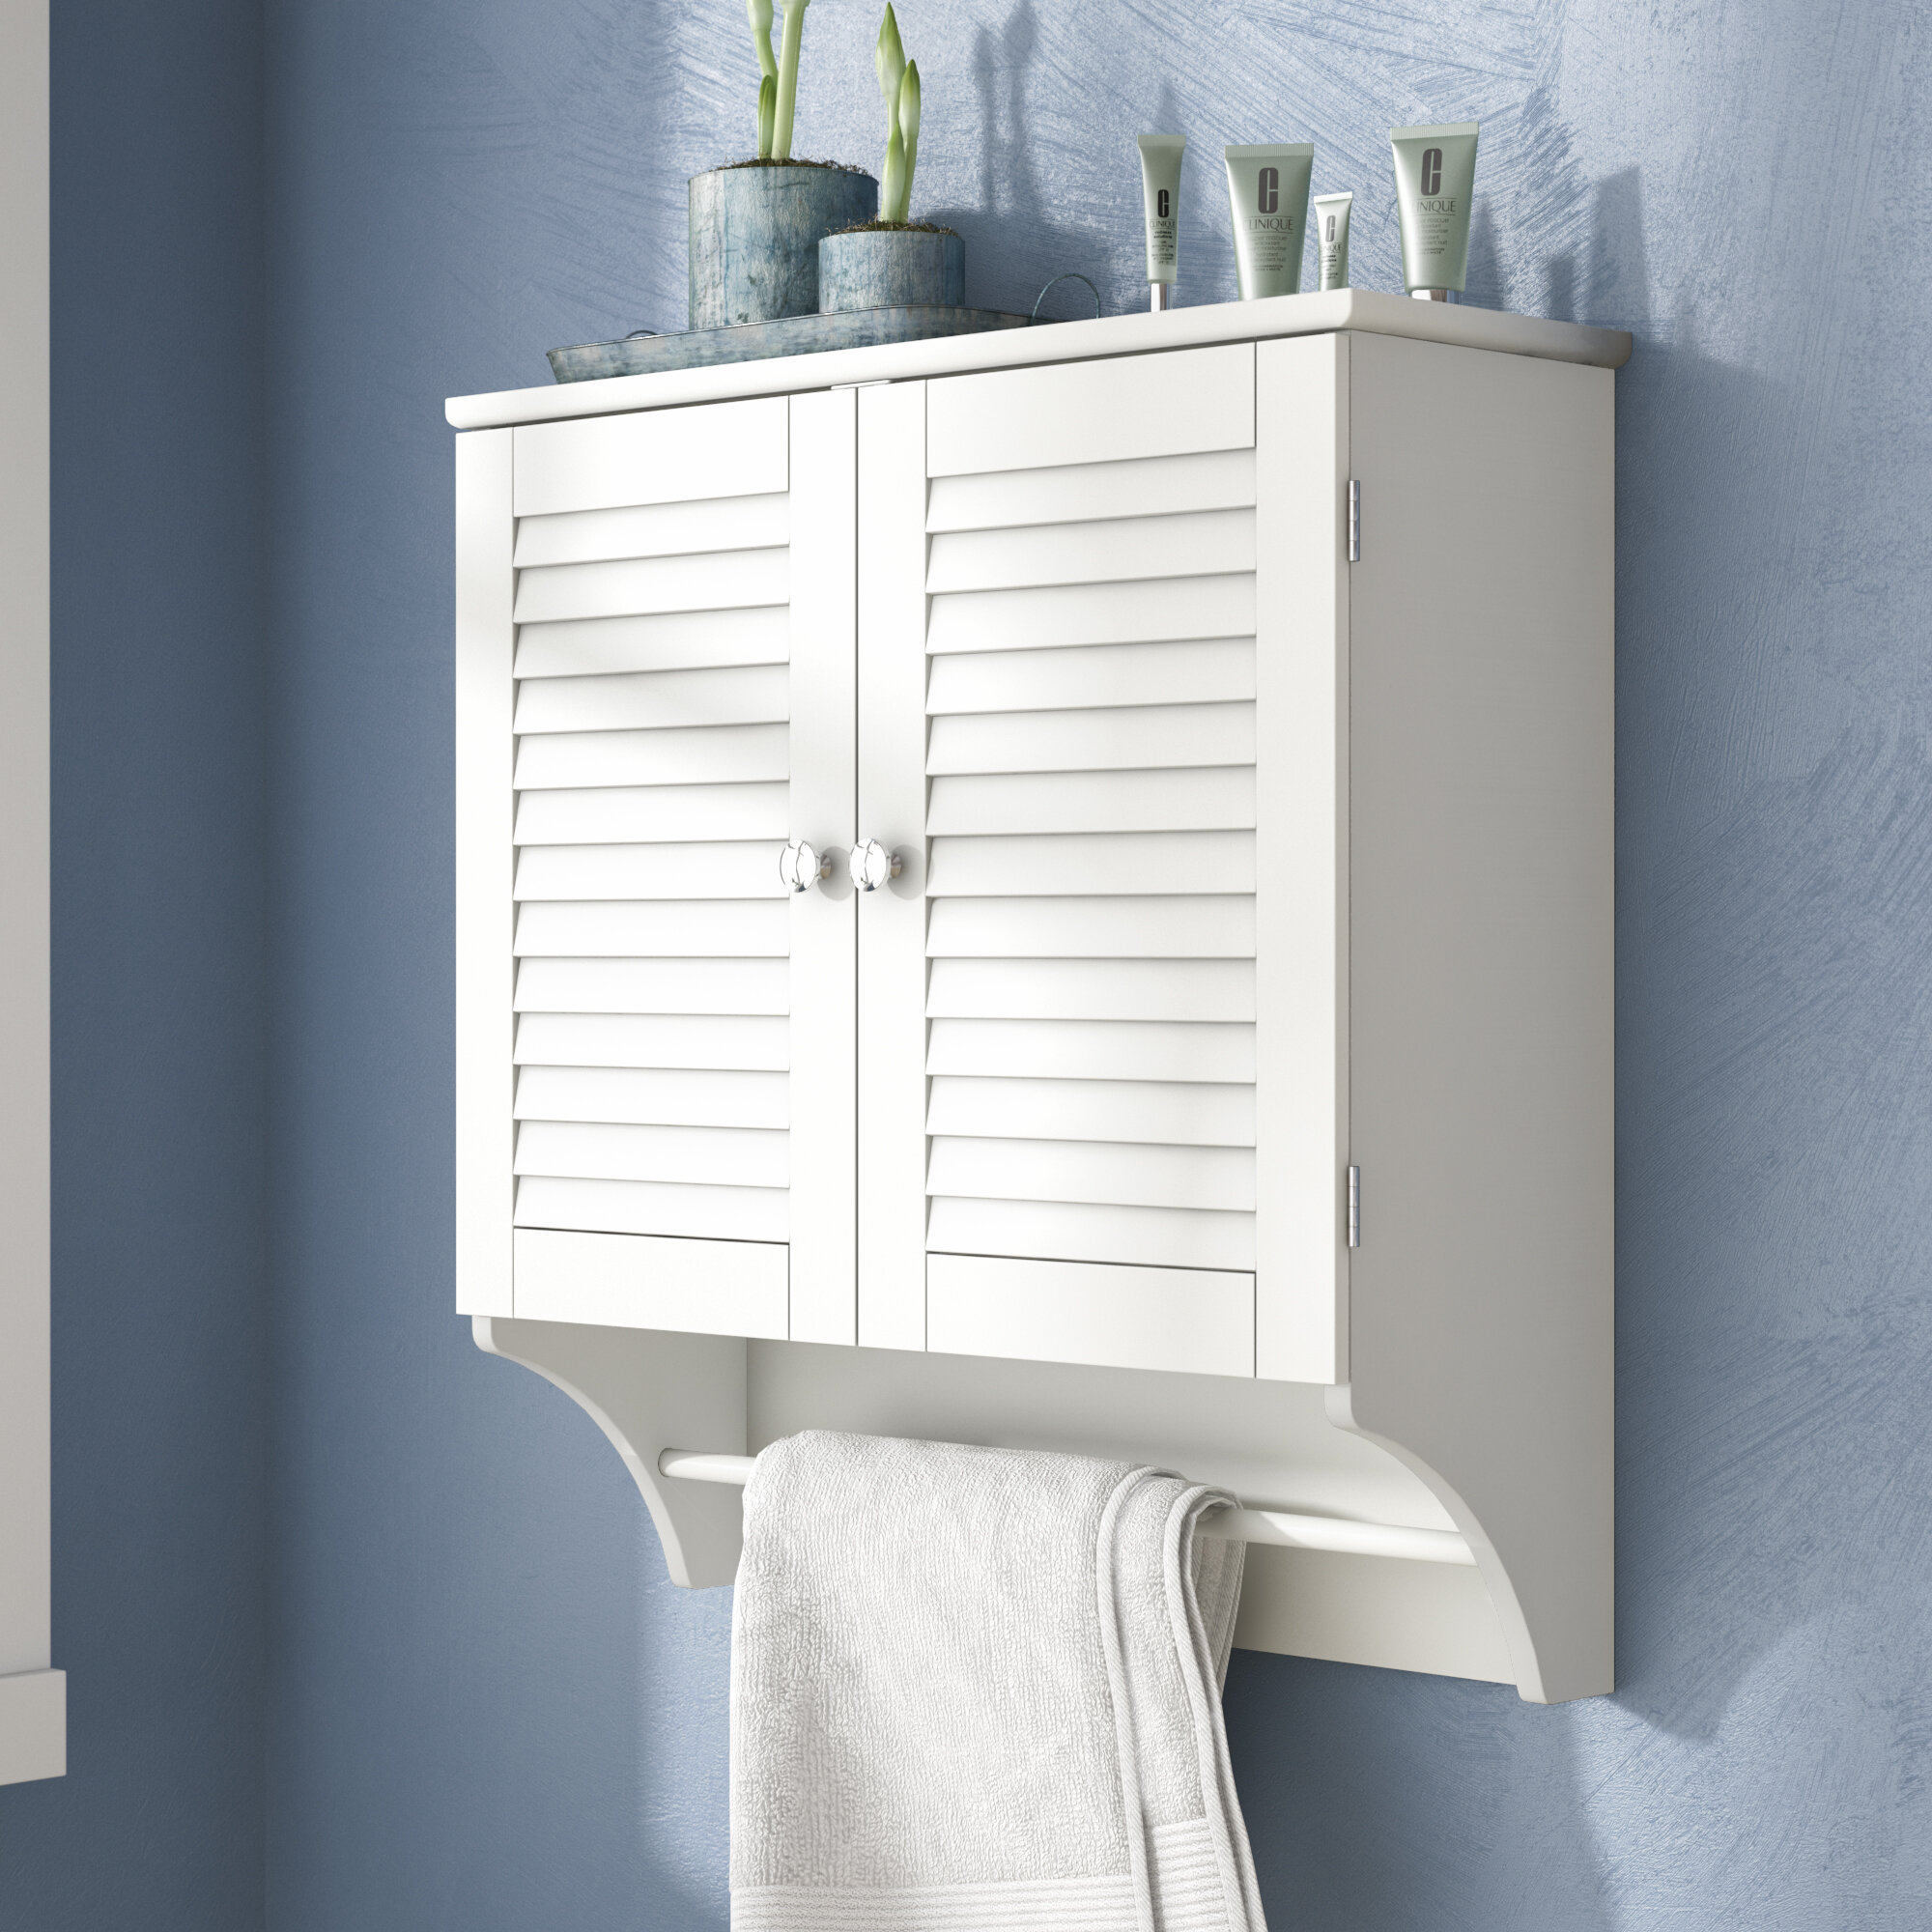 Rebrilliant Ellsworth 23 82 W X 25 H X 8 9 Dwall Mounted Bathroom Cabinet Reviews Wayfair Ca